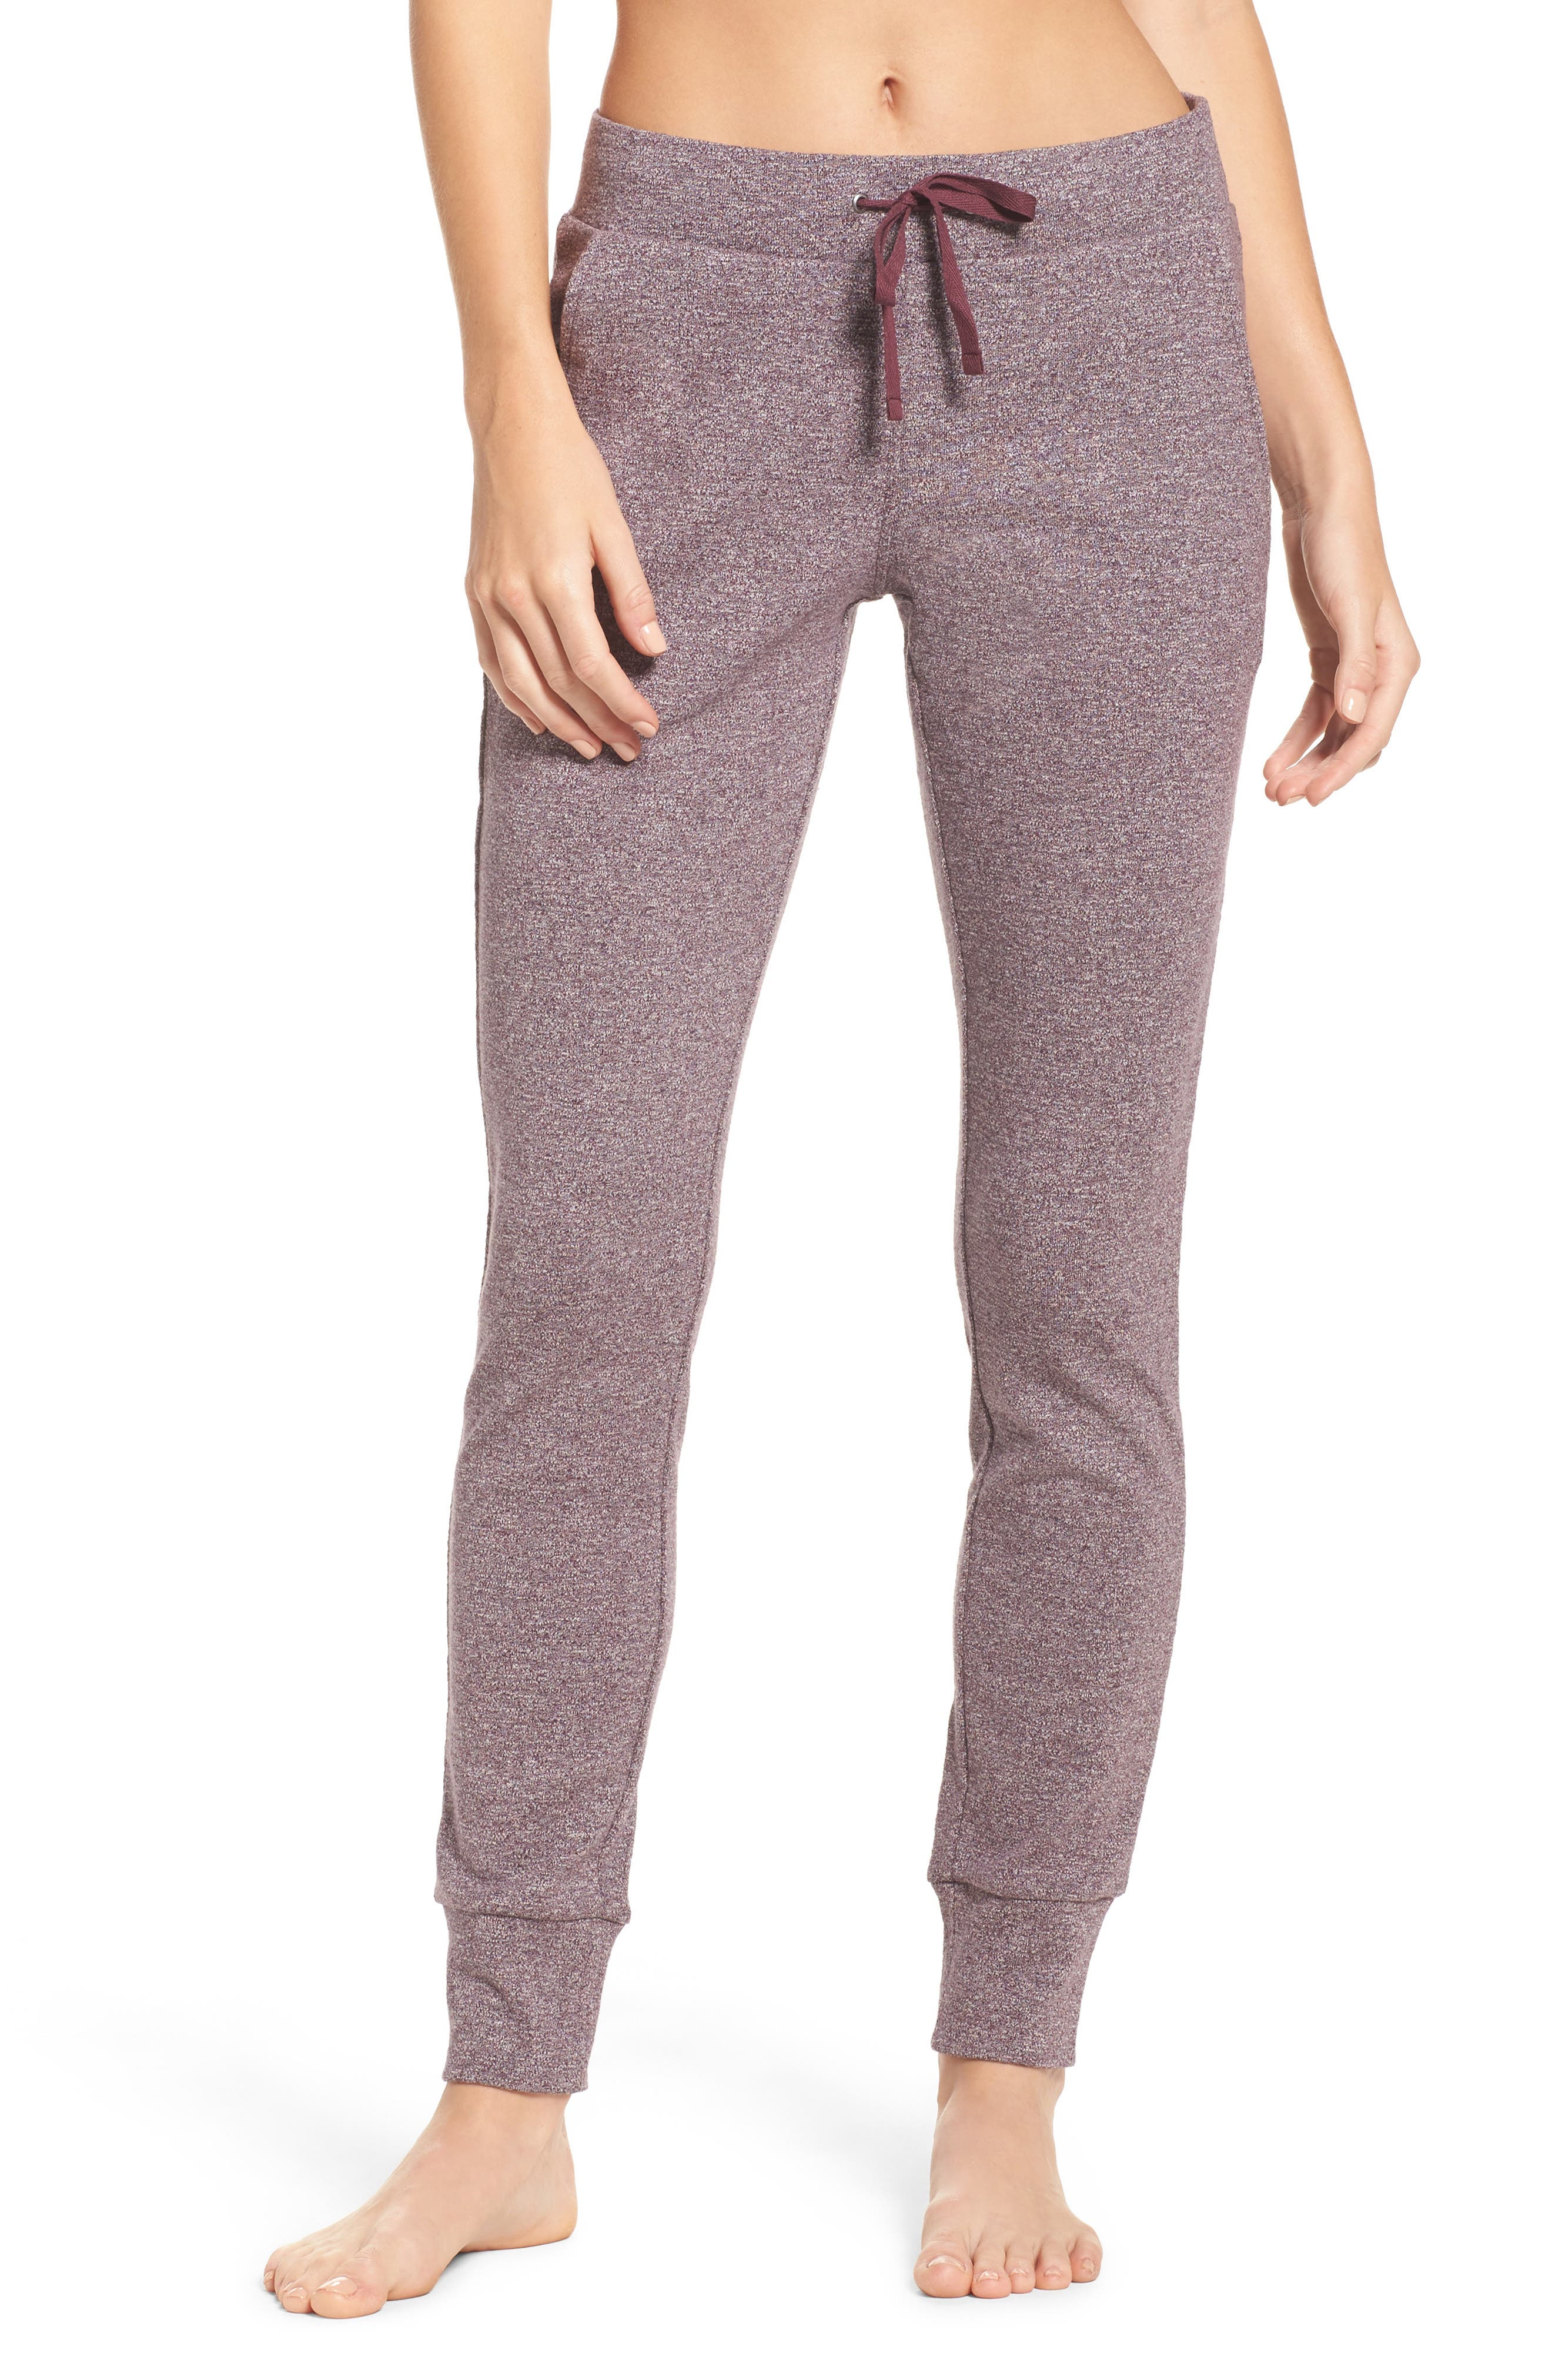 Clementine Cotton Sweatpants,                         Main,                         color, Nightshade Heather